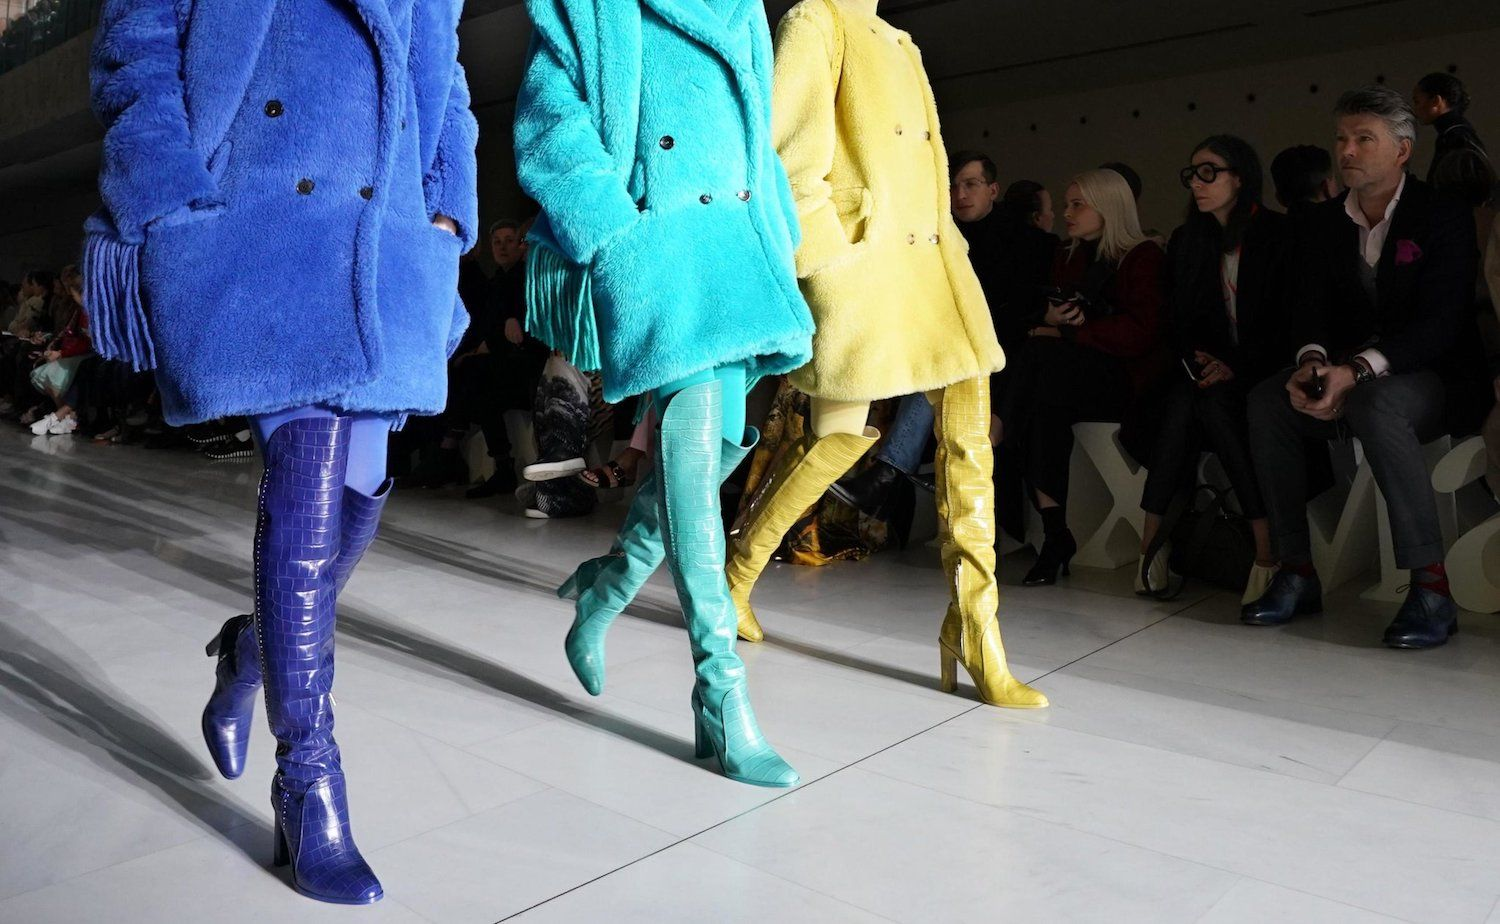 Consumers Are Turning Away From Real Fur, but Faux Fur Is Not a Perfect Fashion Fix